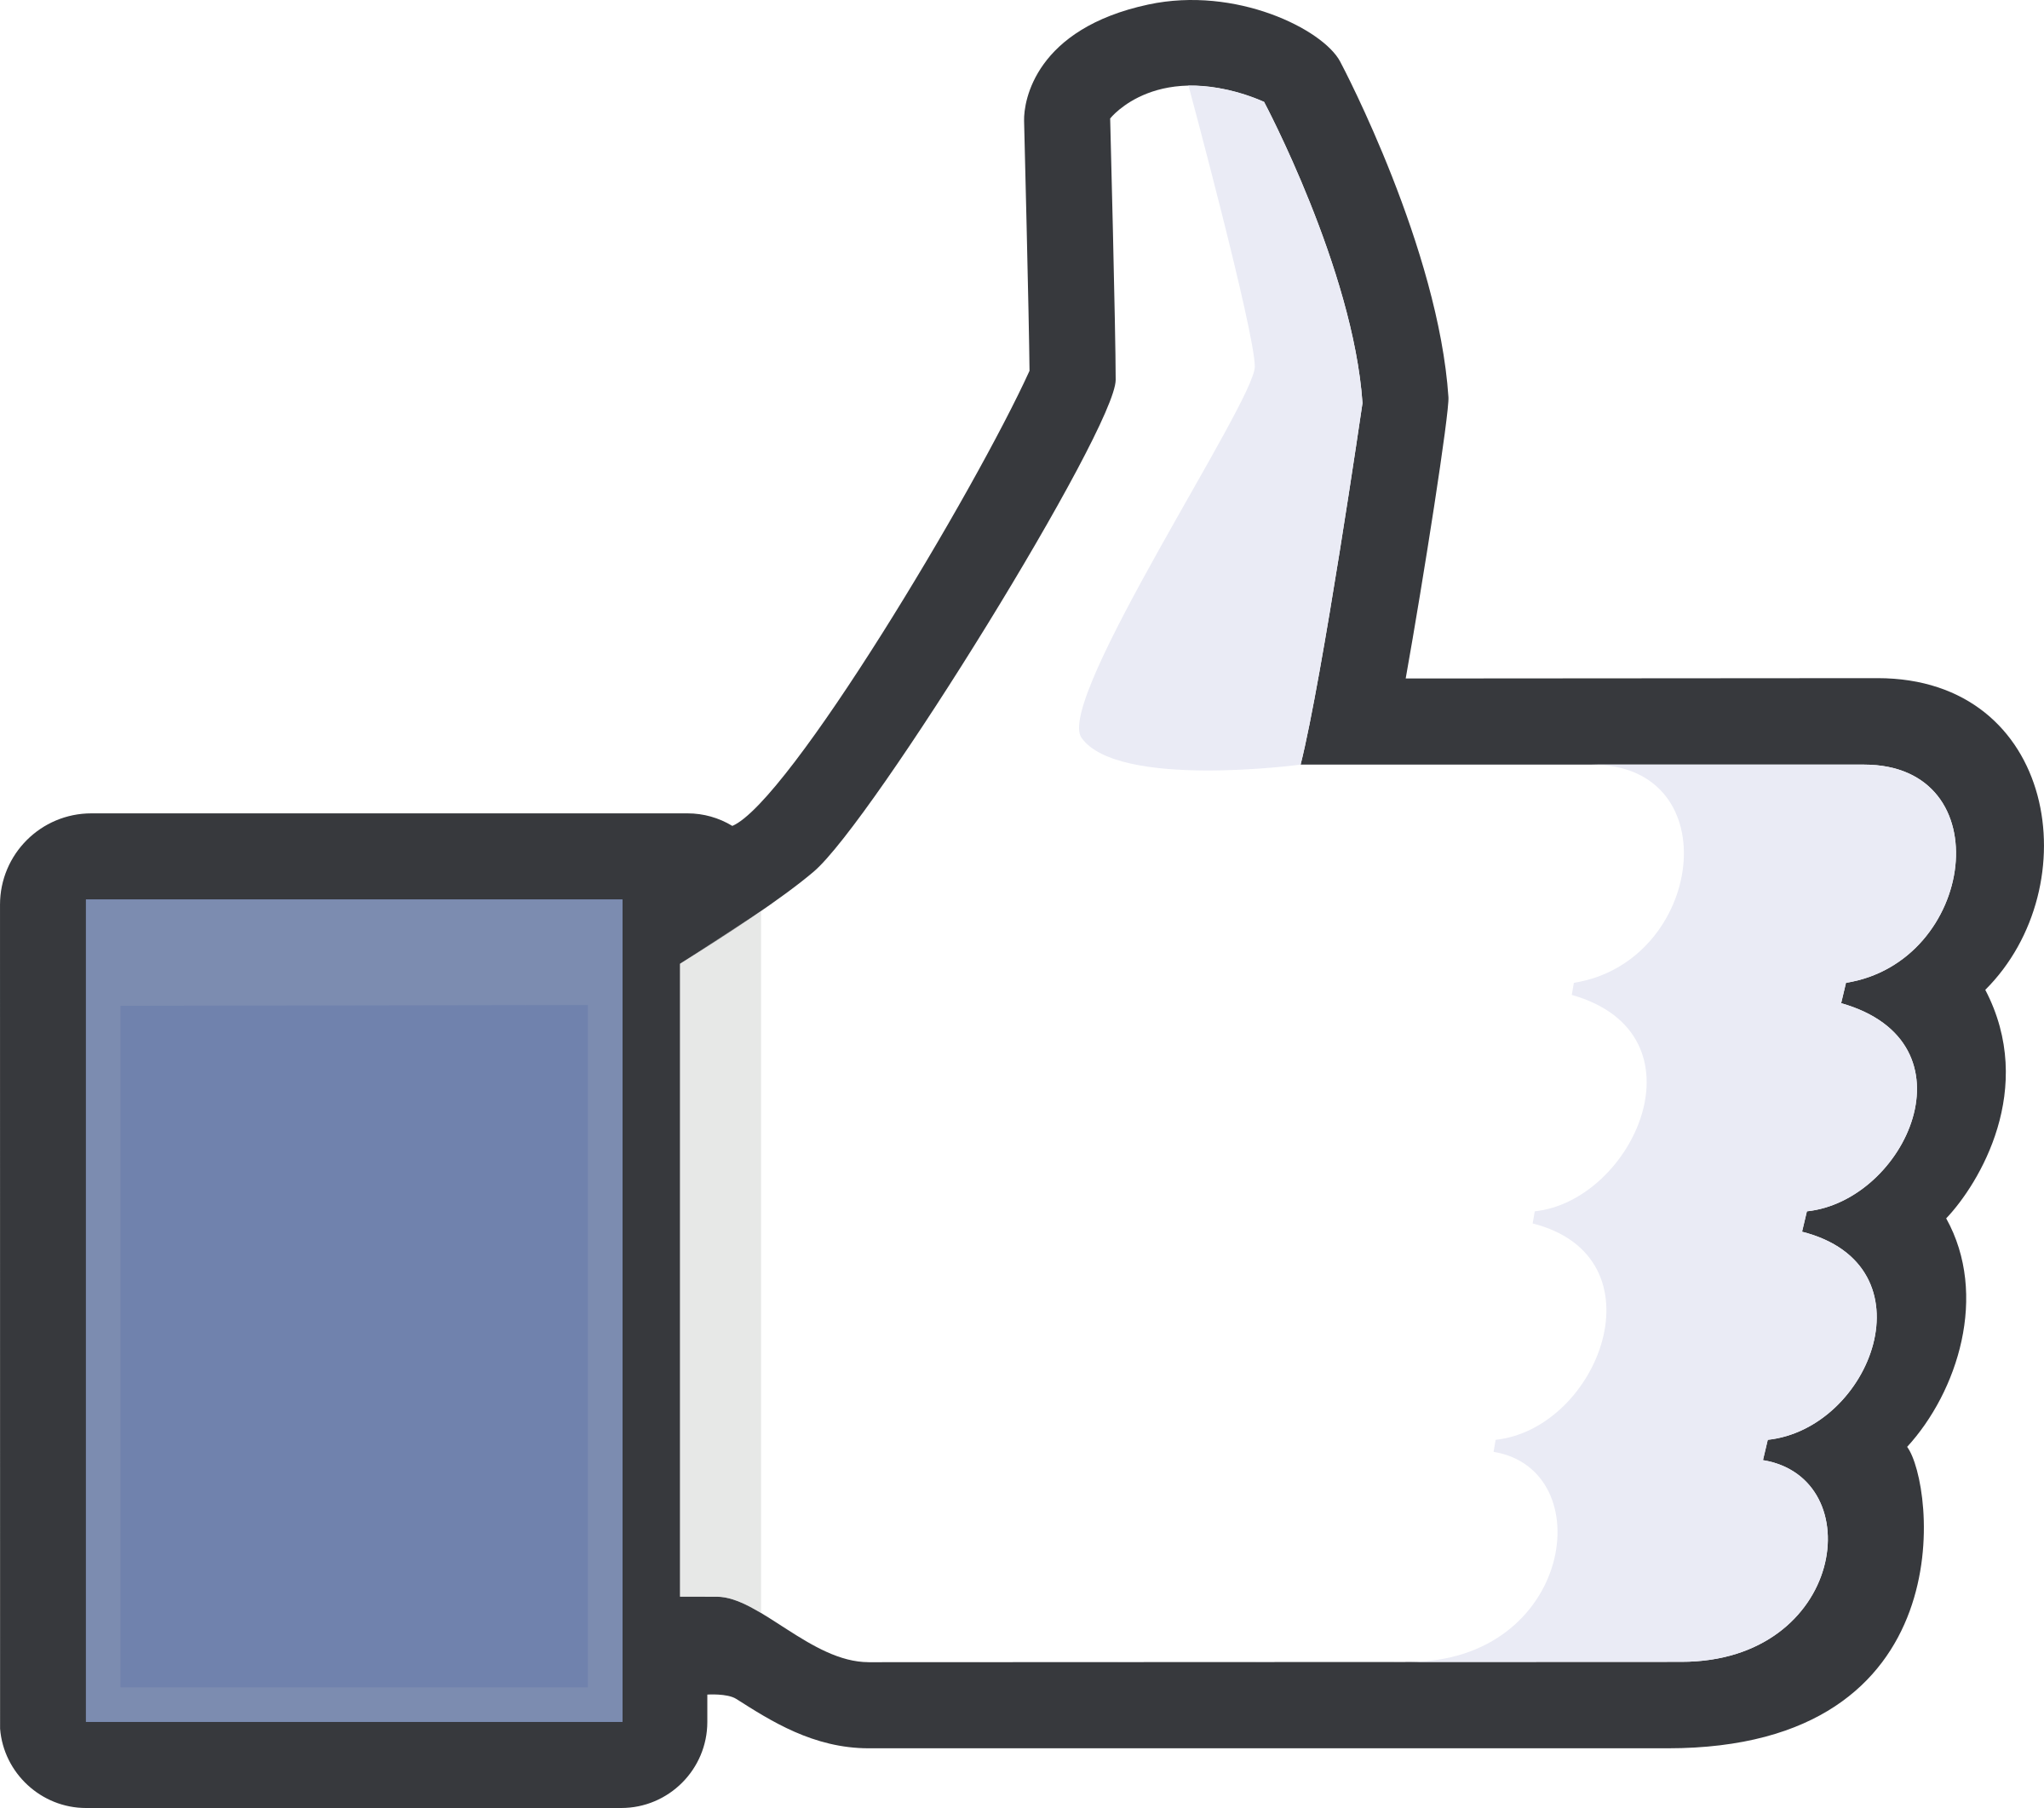 Thumbs up - Free gestures icons |Thumbs Up Png Transparent